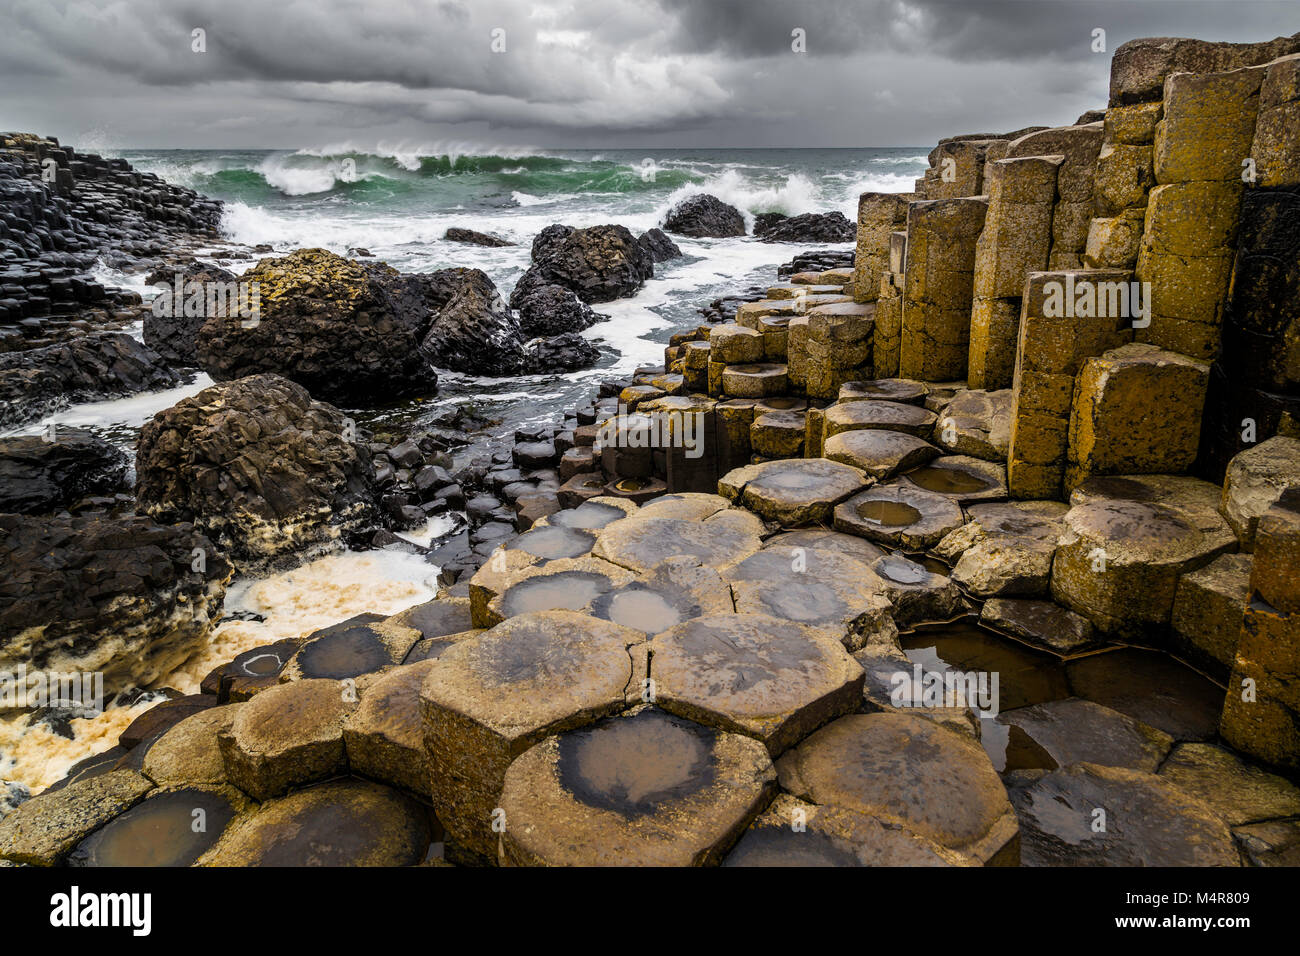 The Giant's Causeway in north of Ireland is an area of about 40,000 interlocking basalt columns, the result - Stock Image